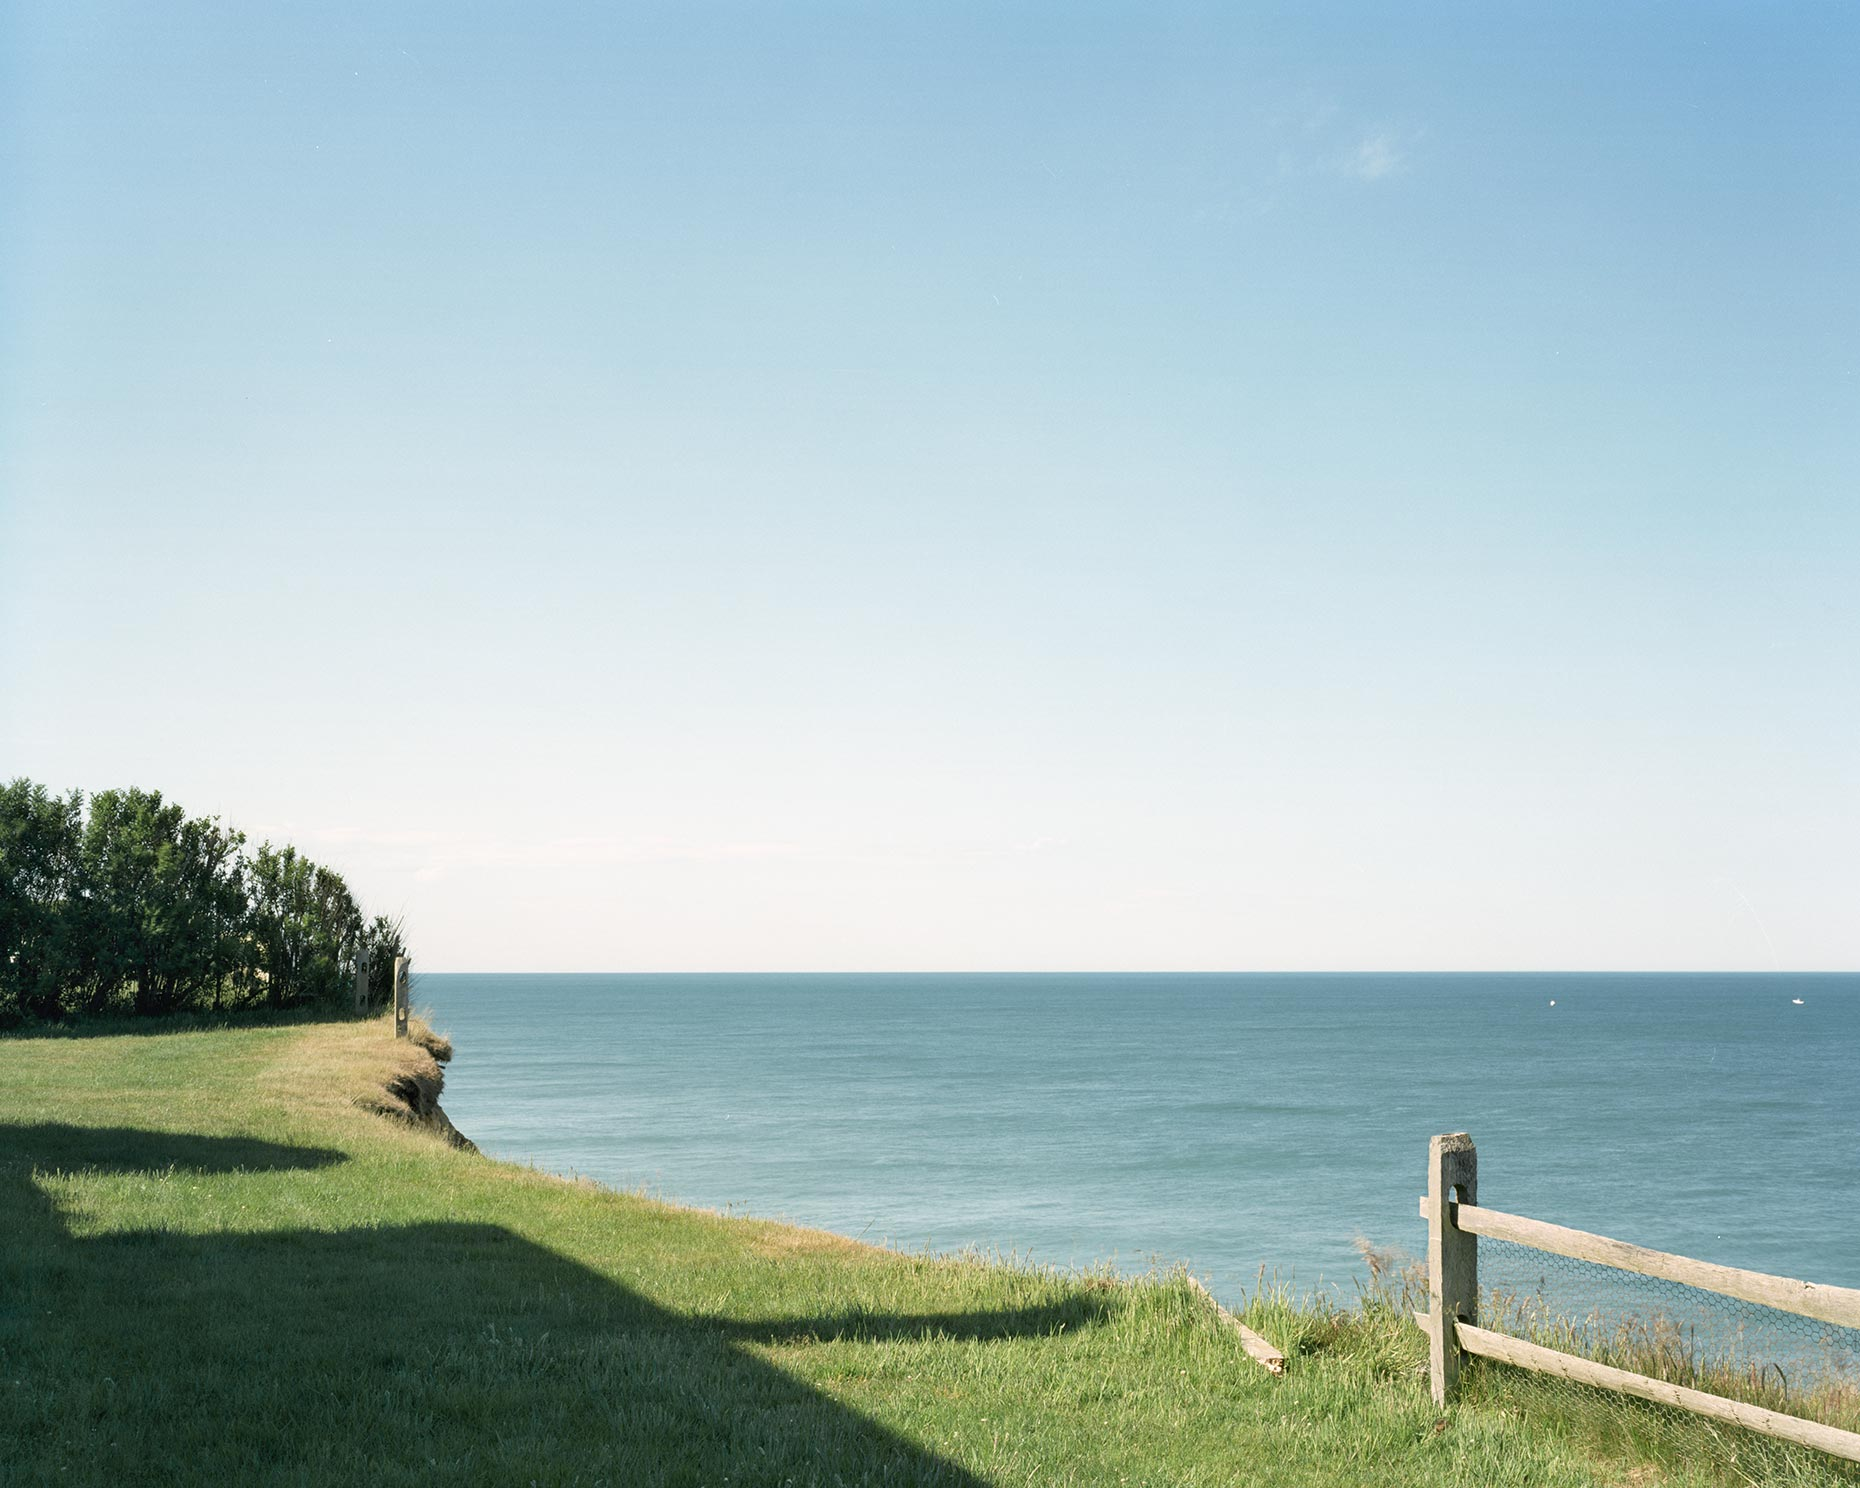 Edge of the Island  |  Nantucket  |  Michael Gaillard